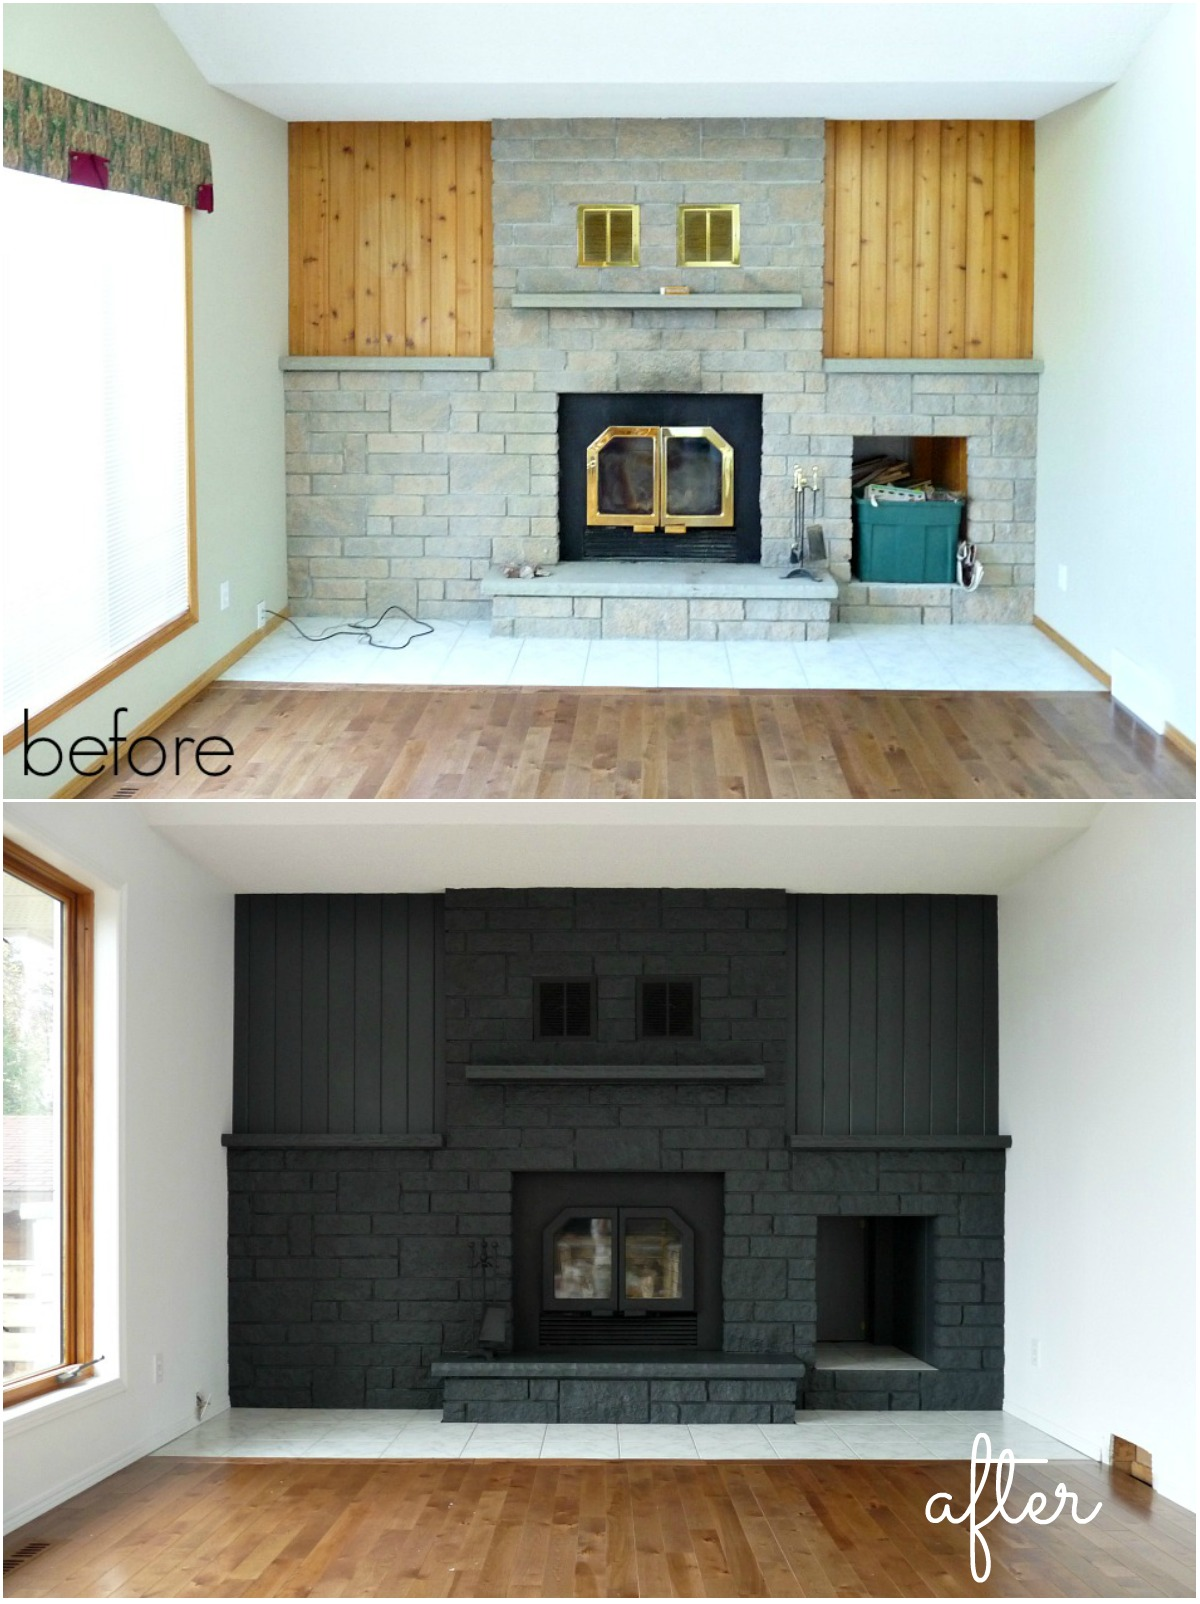 Painted brick fireplace makeover fireplace design ideas for Bricks painting design